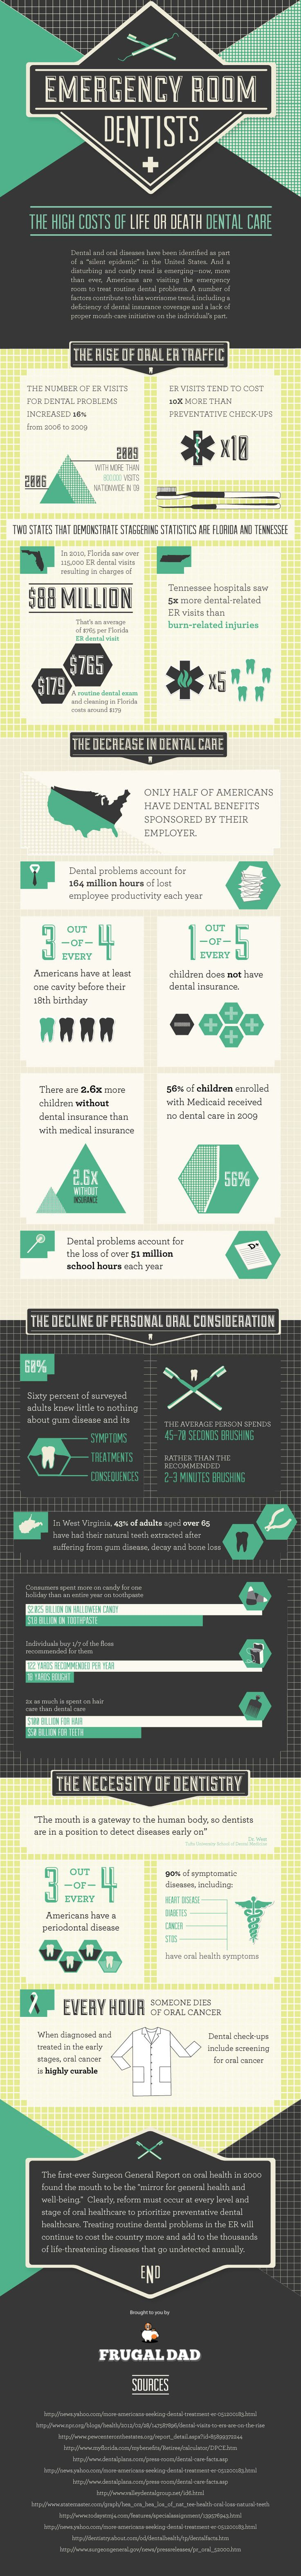 VaOHC is working the the Joint Commission on Healthcare to study the economic effects of dental-related ER visits. This infographic from frugaldad.com details many reasons why oral health access is an important issue.